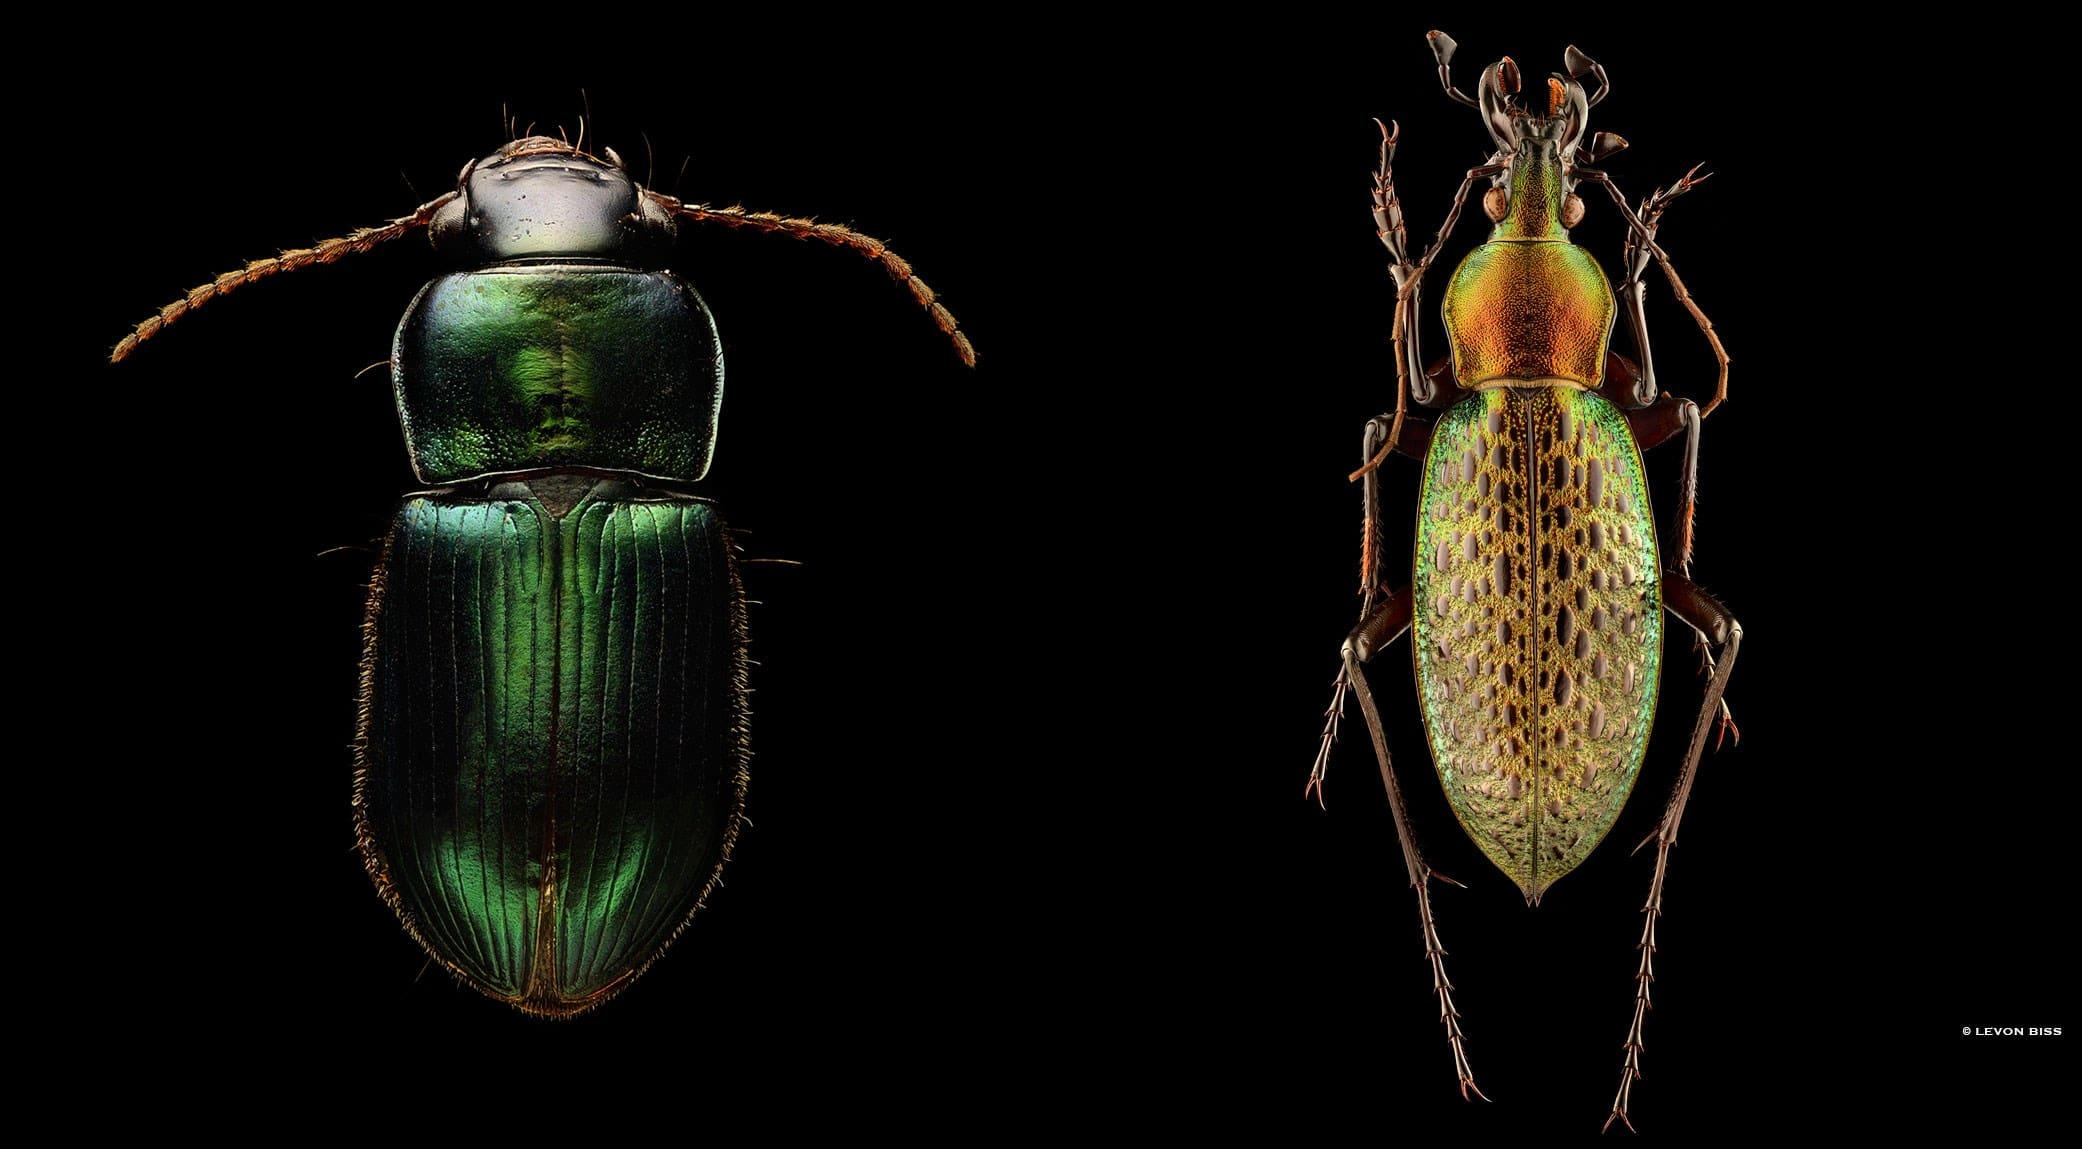 Ground Beetle | Chinese Ground Beetle